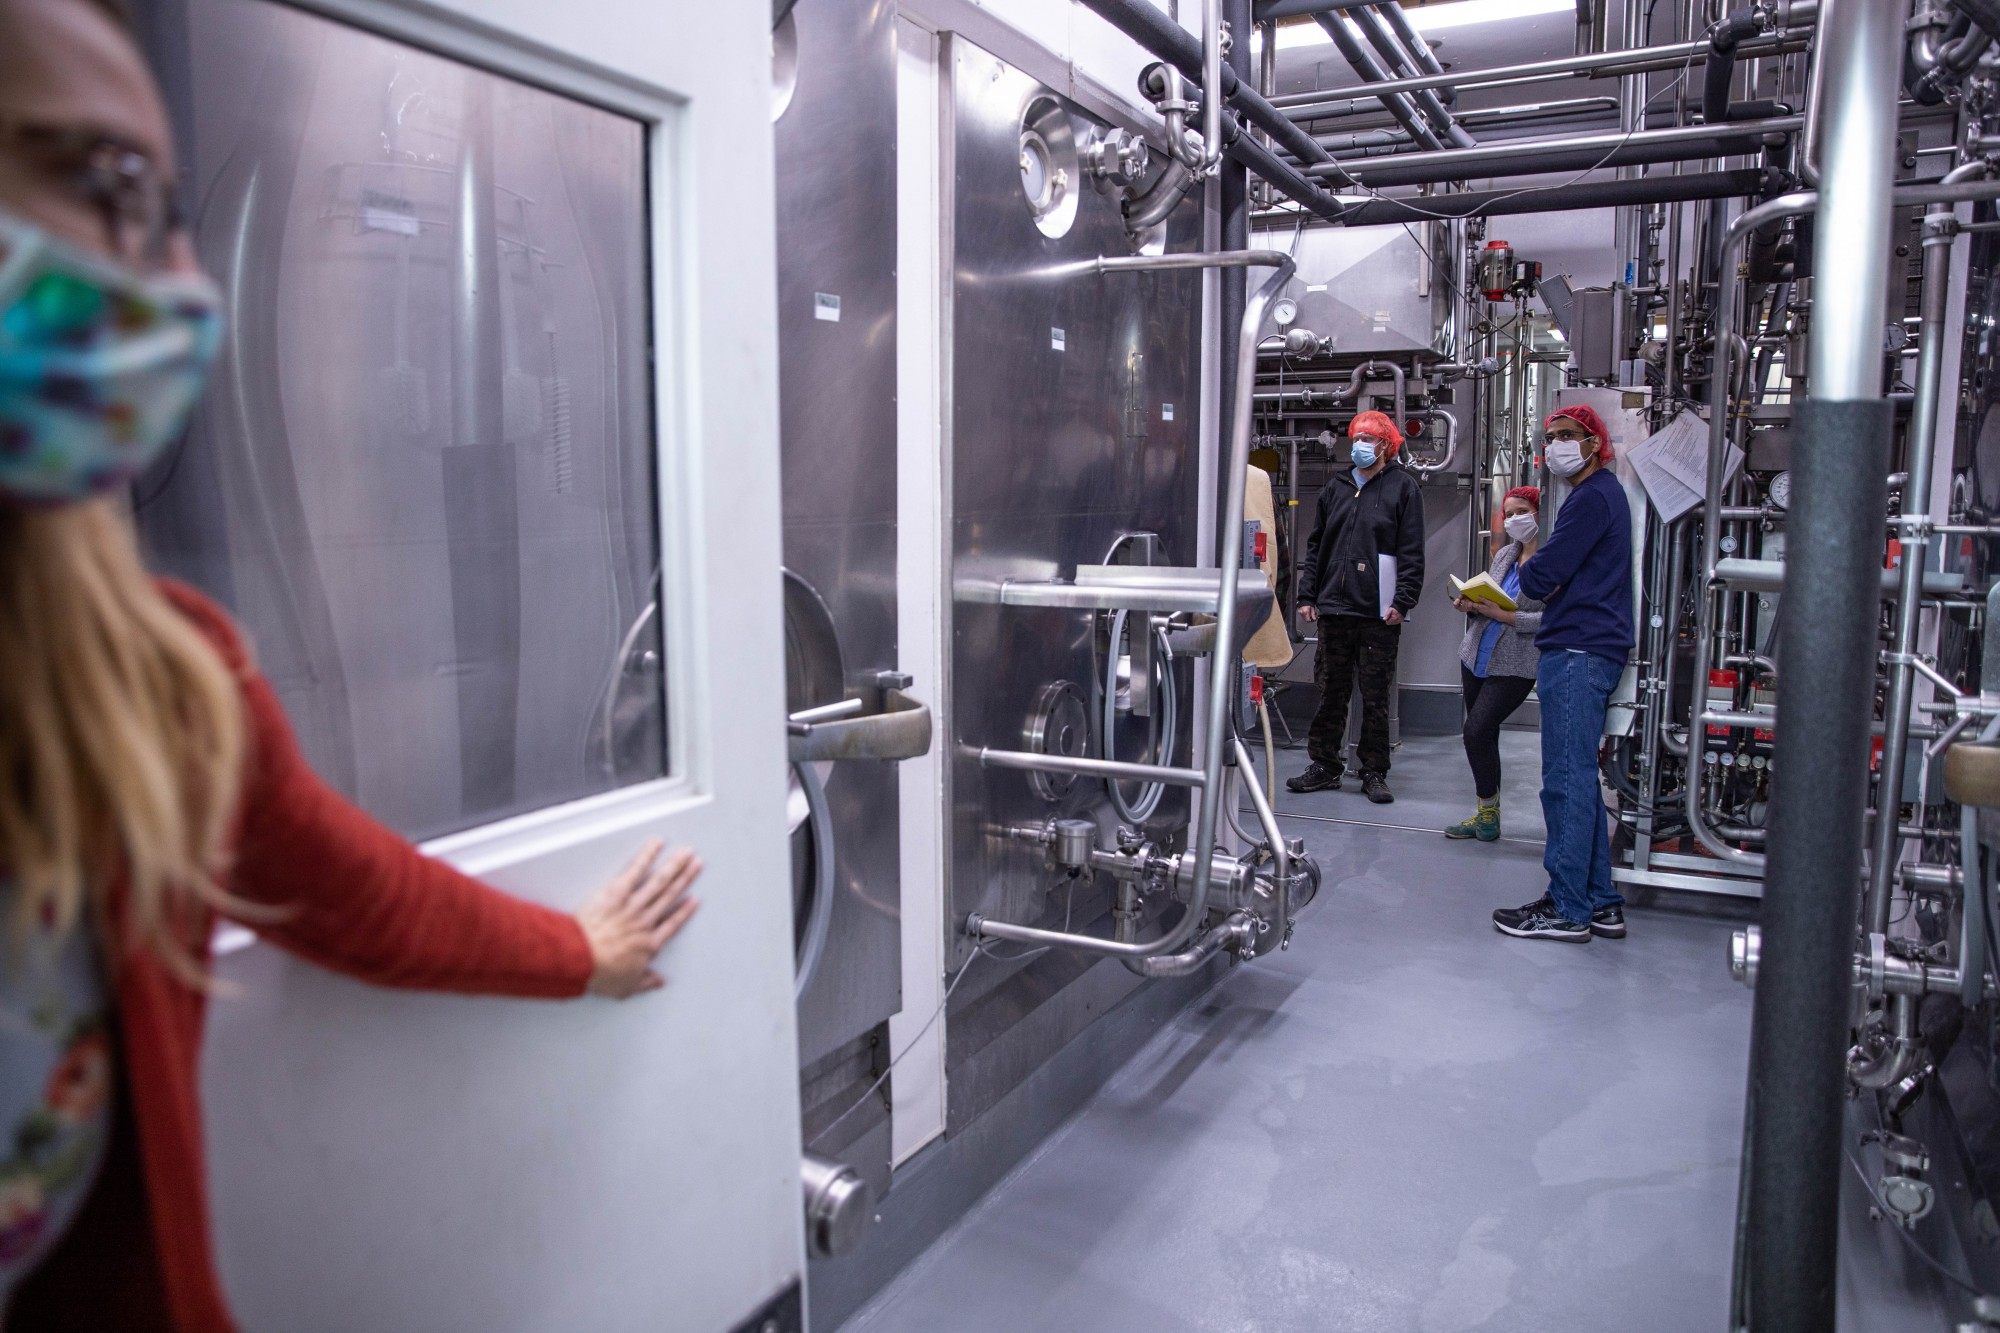 A team meeting is held inside a processing room inside the Snowville Creamery plant in Pomeroy, Ohio, on Monday, Nov. 16, 2020.